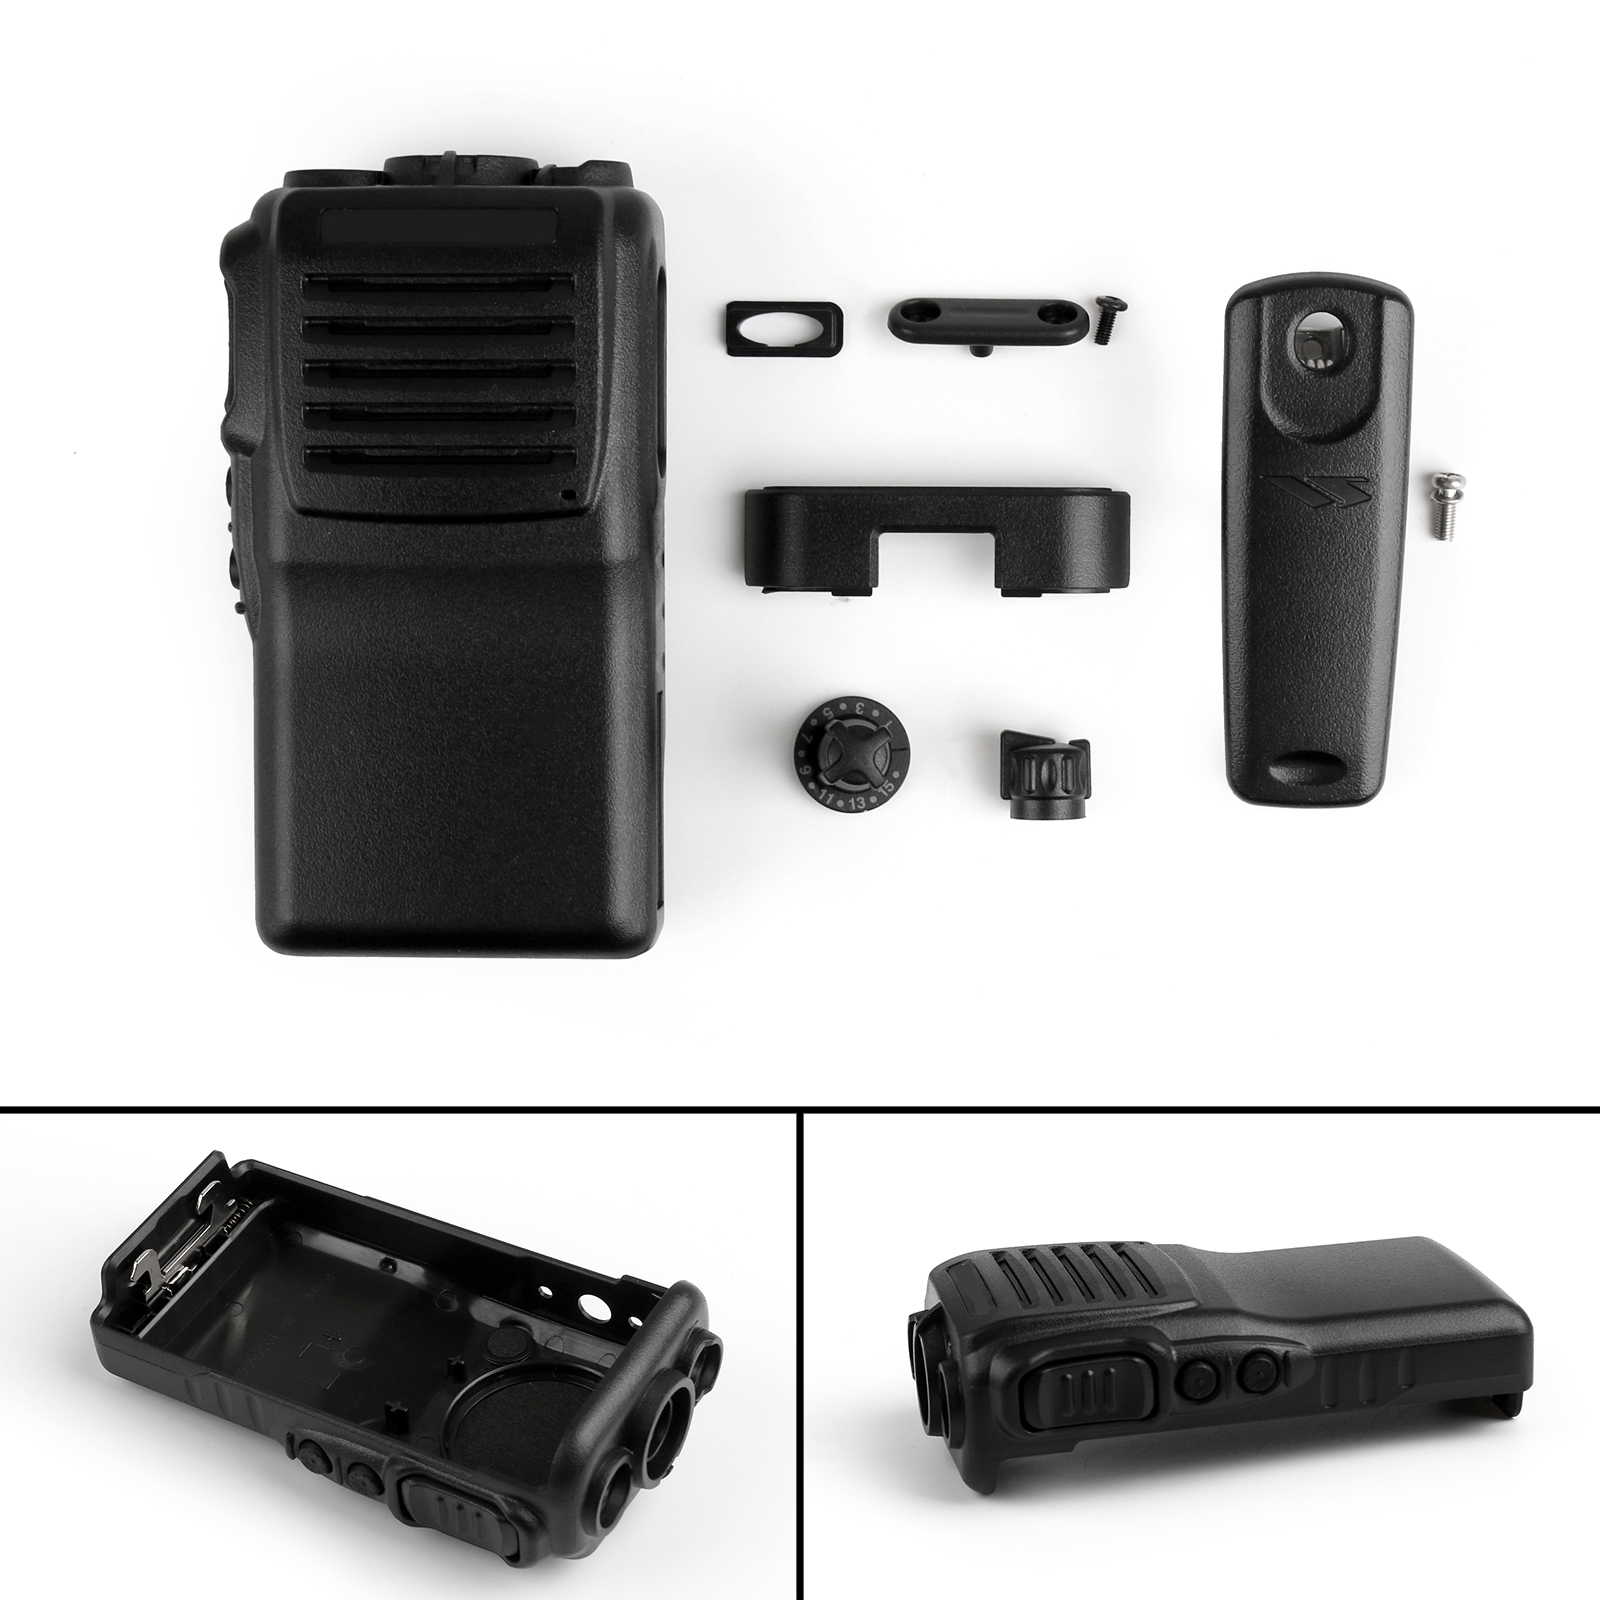 5x Front Outer Case Housing Cover Shell For Vertex